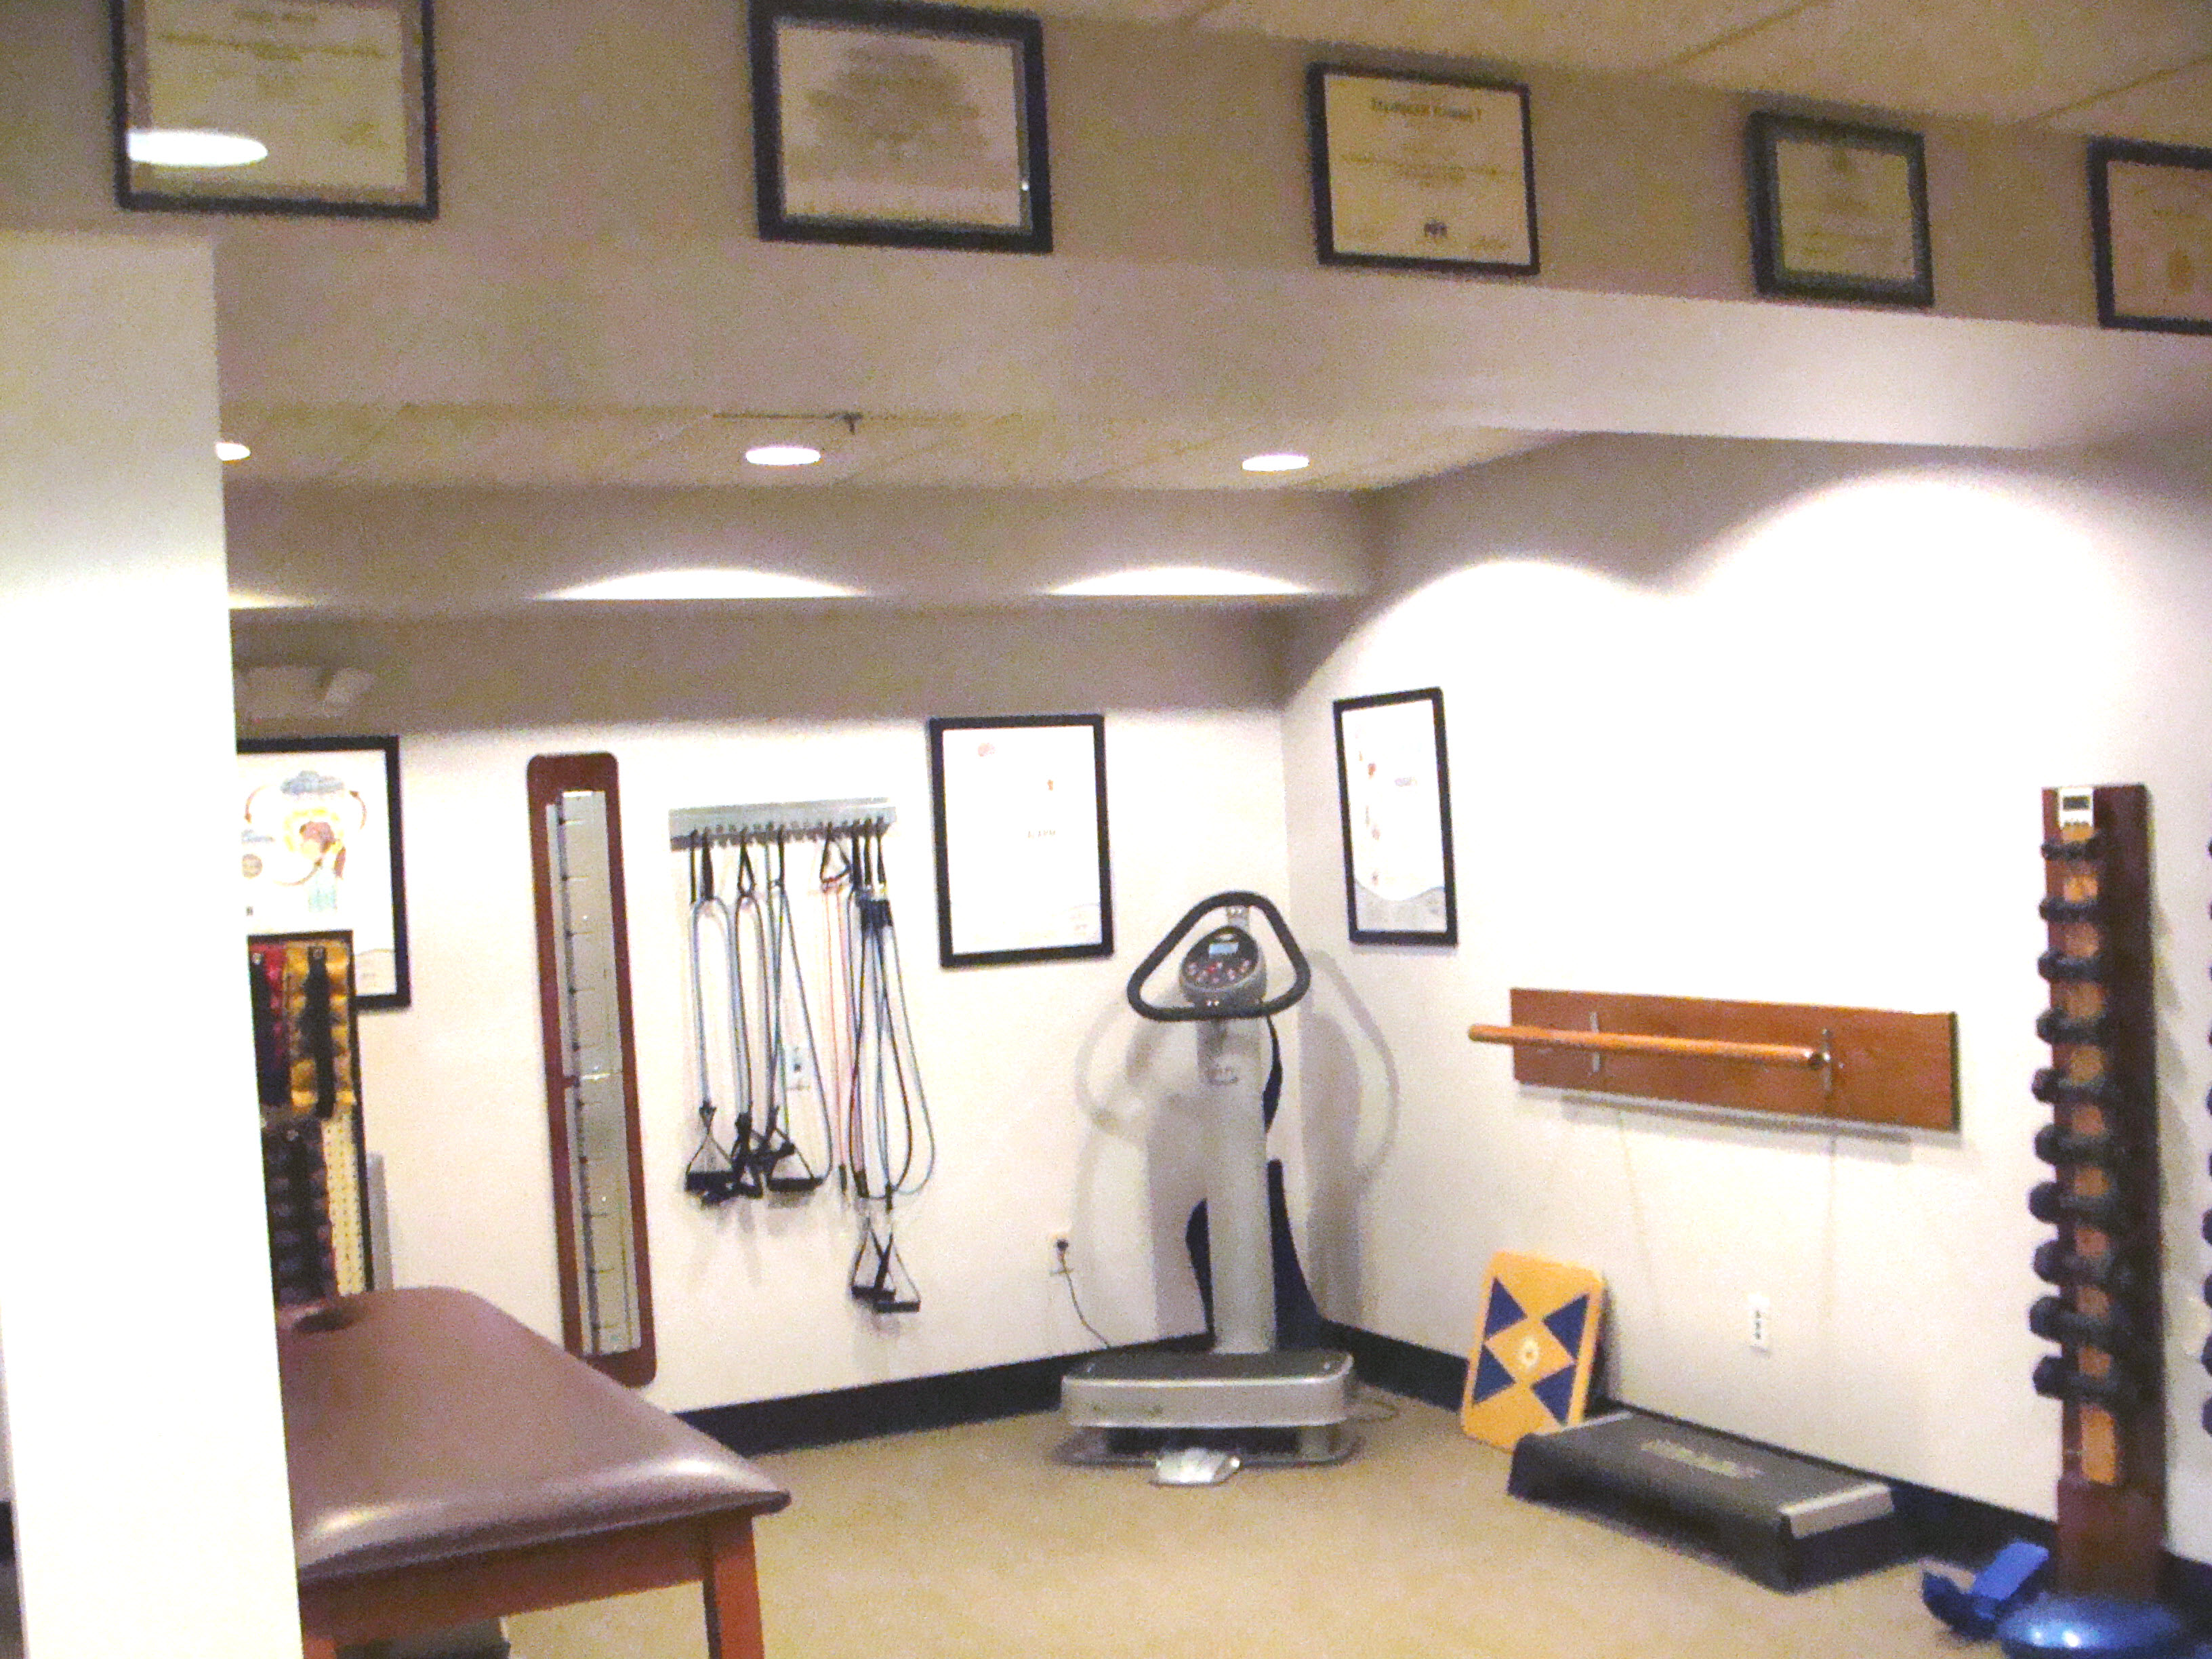 Premier Physical Therapy image 3